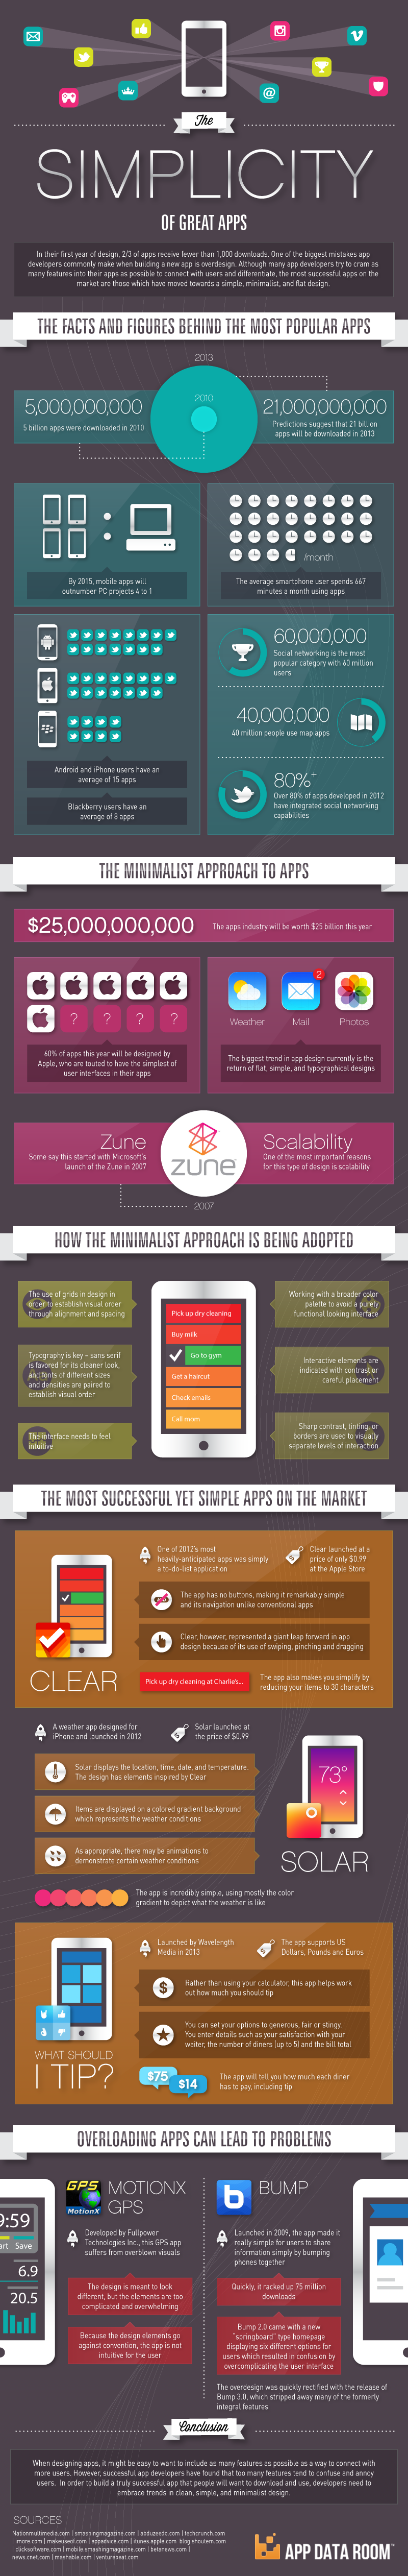 the-simplicity-of-great-apps-infographic